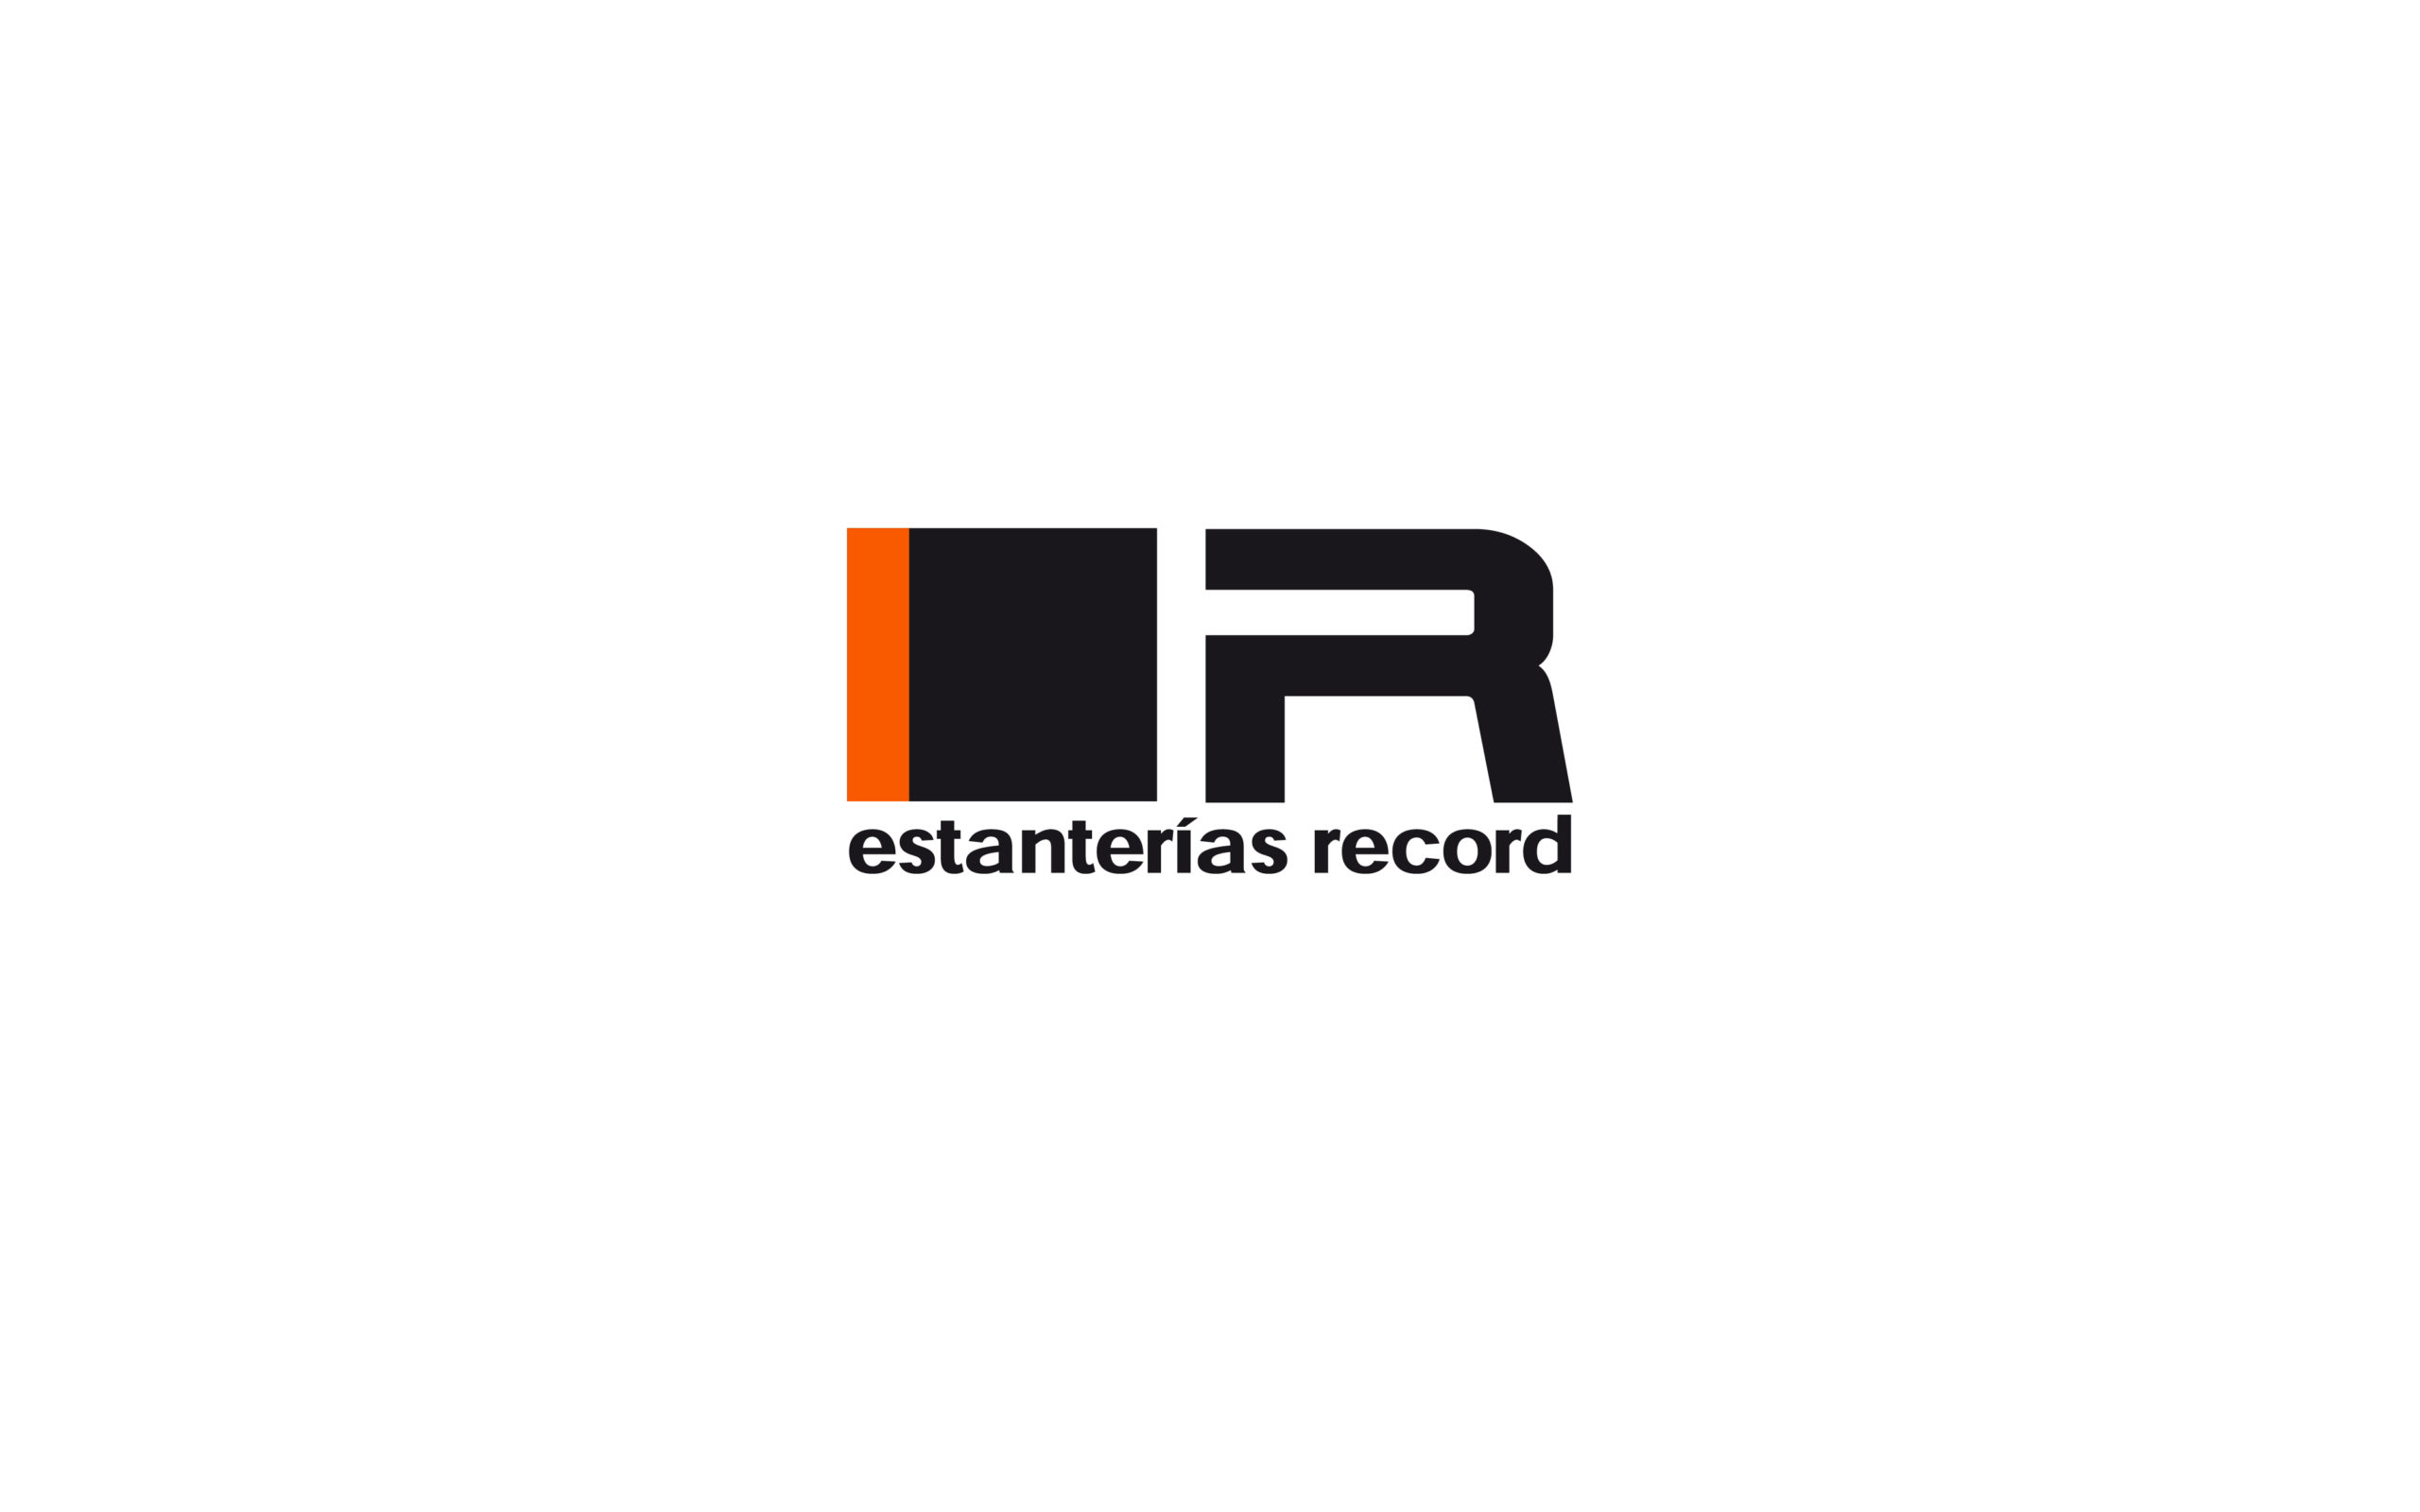 identidad corporativa-branding-estanterias-records